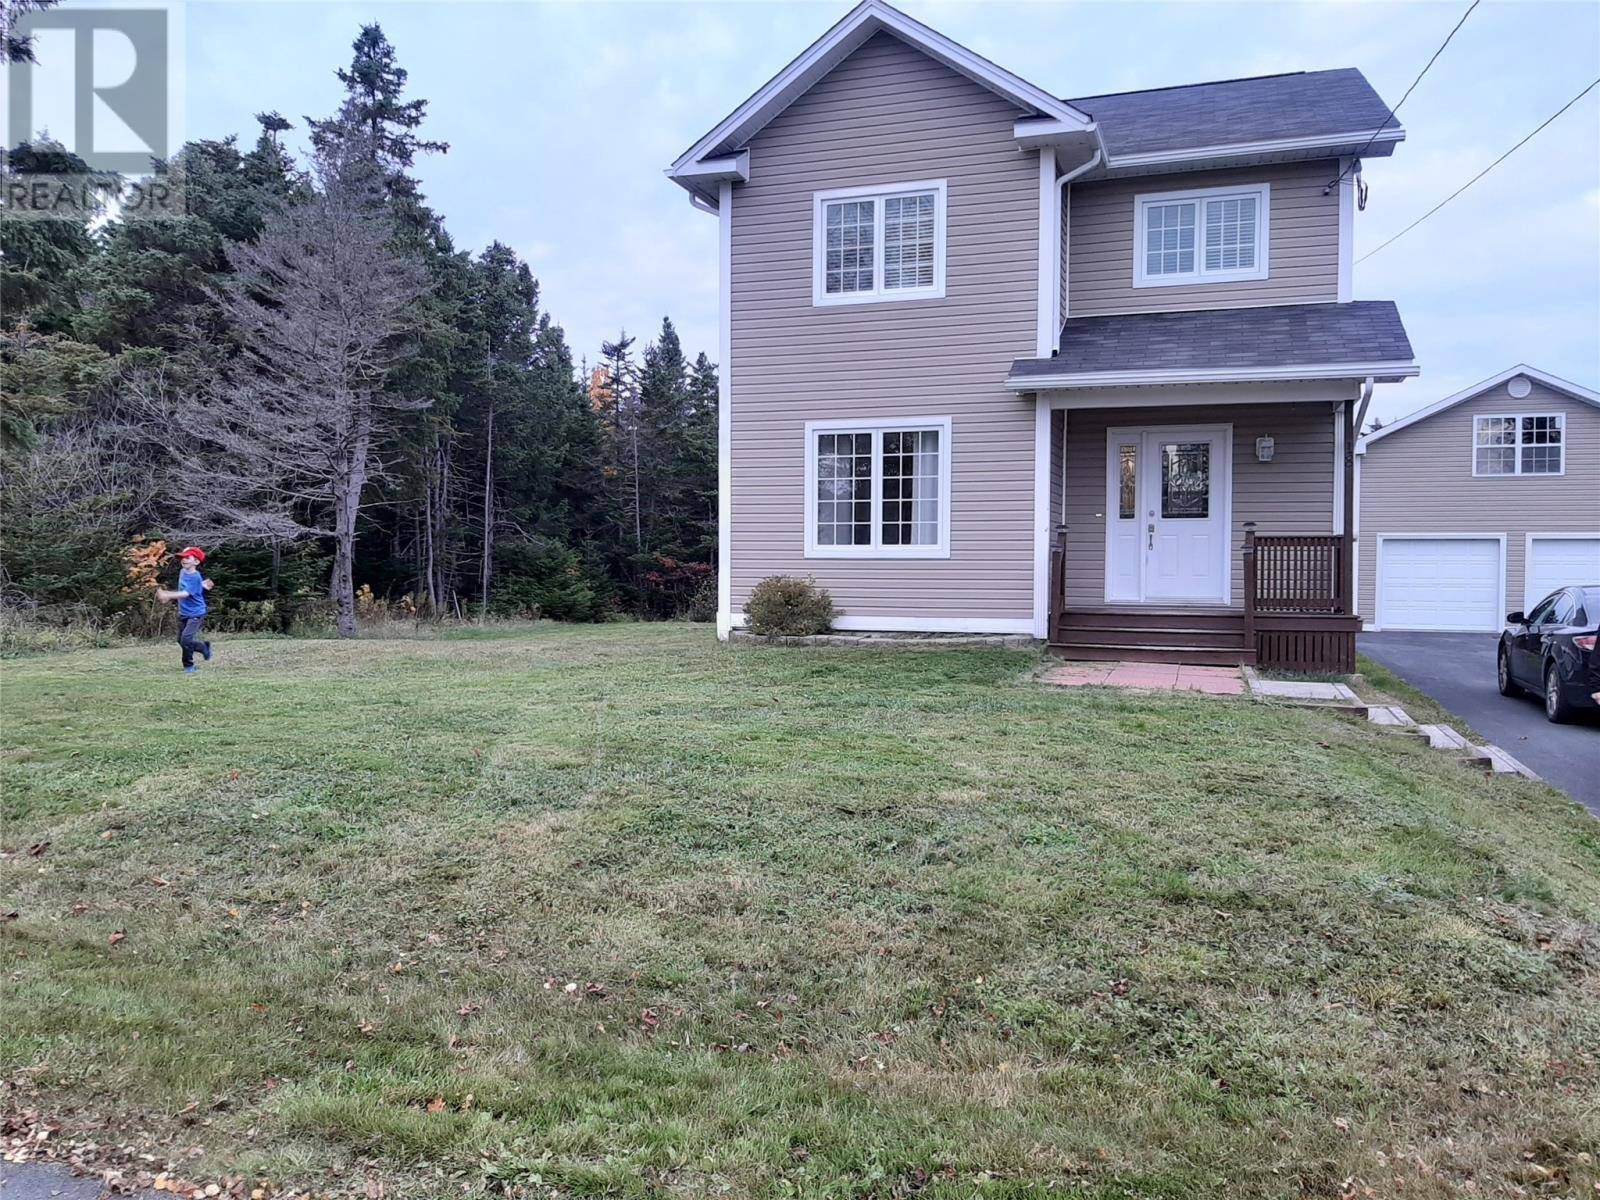 House for sale at 18 Battens Rd Spaniard's Bay Newfoundland - MLS: 1205343